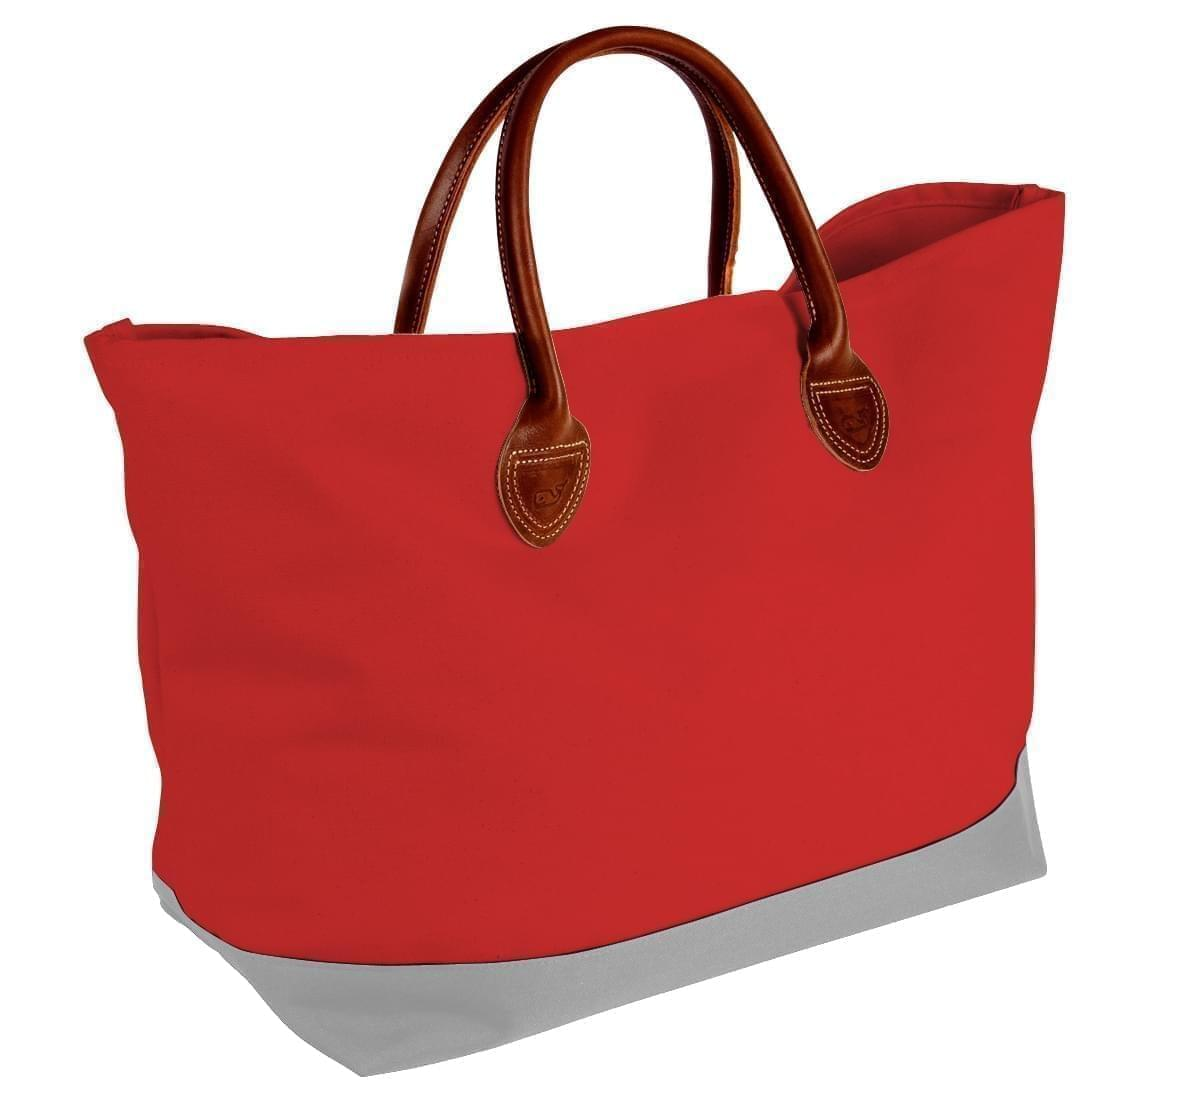 USA Made Canvas Leather Handle Totes, Red-Grey, 10899-NE9